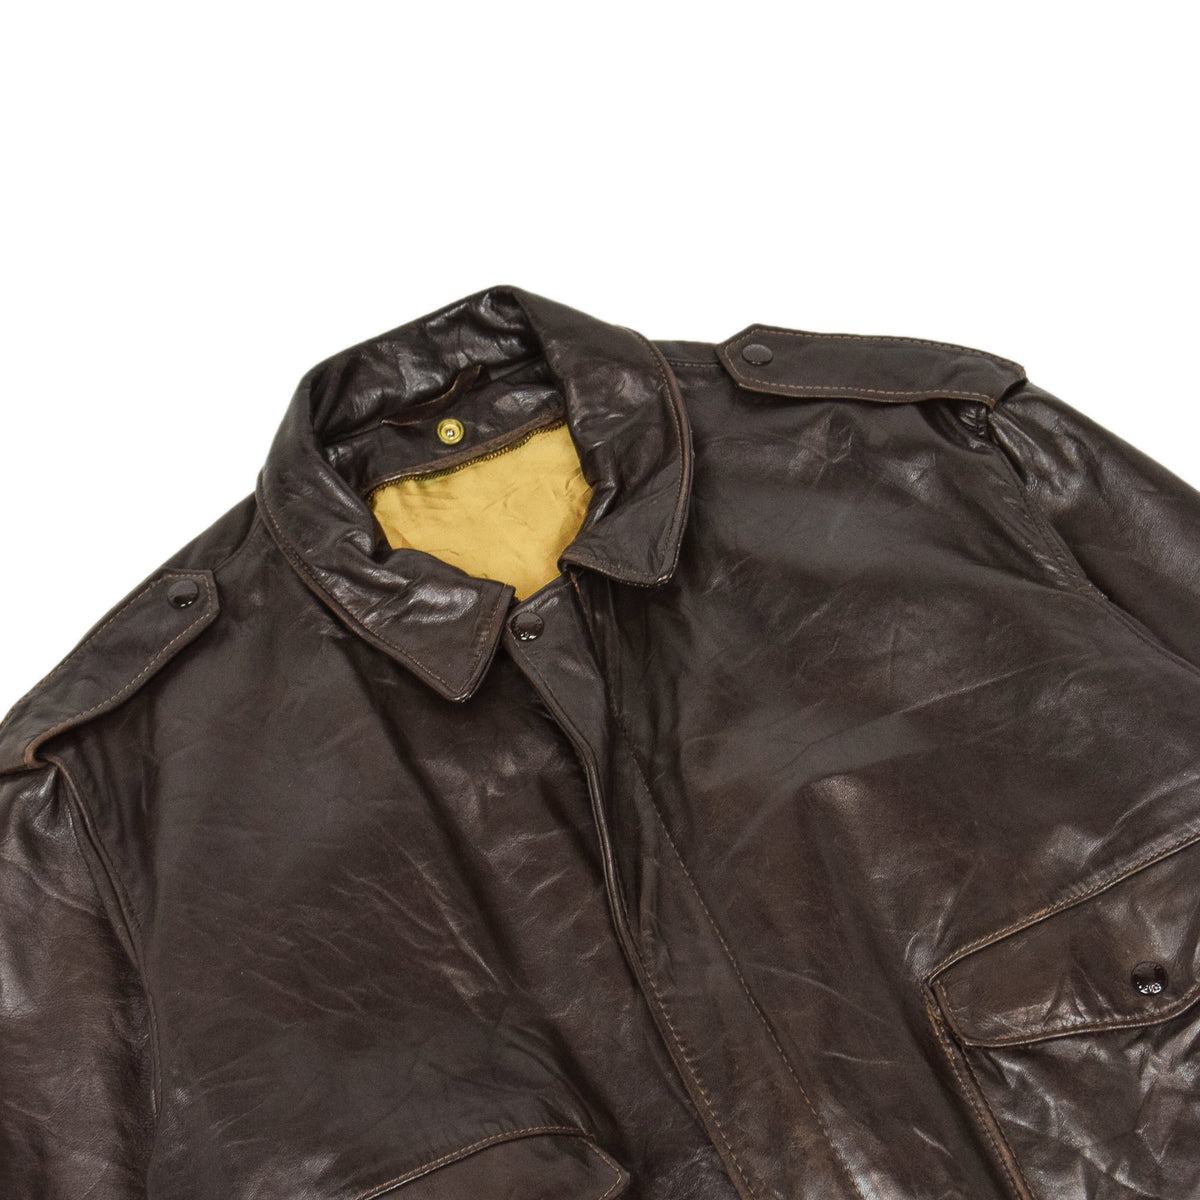 Vintage 80s A-2 Schott Brown Leather Flight Bomber Jacket Made in USA 48 XXL chest